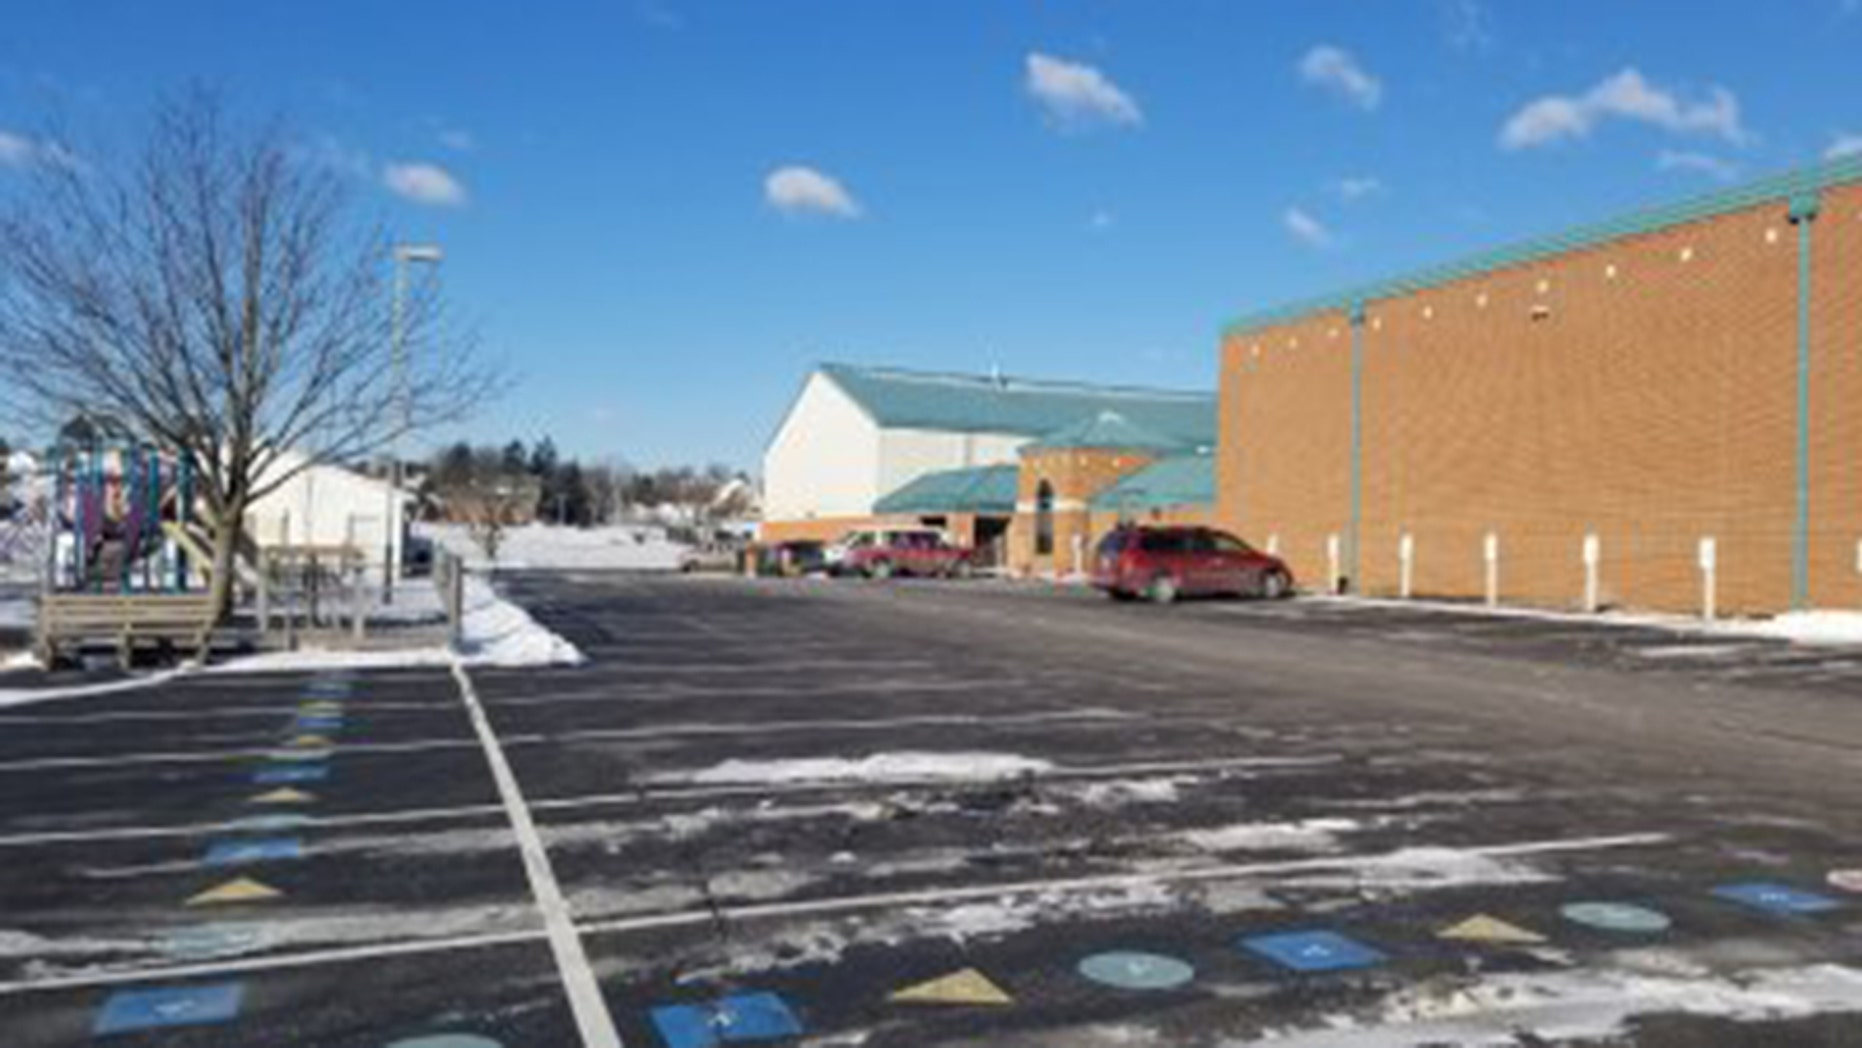 Police say a Northern York County Regional Police officer came across a suspicious vehicle in the parking lot of Stillmeadow Church of the Nazarene in Manchester Township around 3:00 a.m. Saturday.